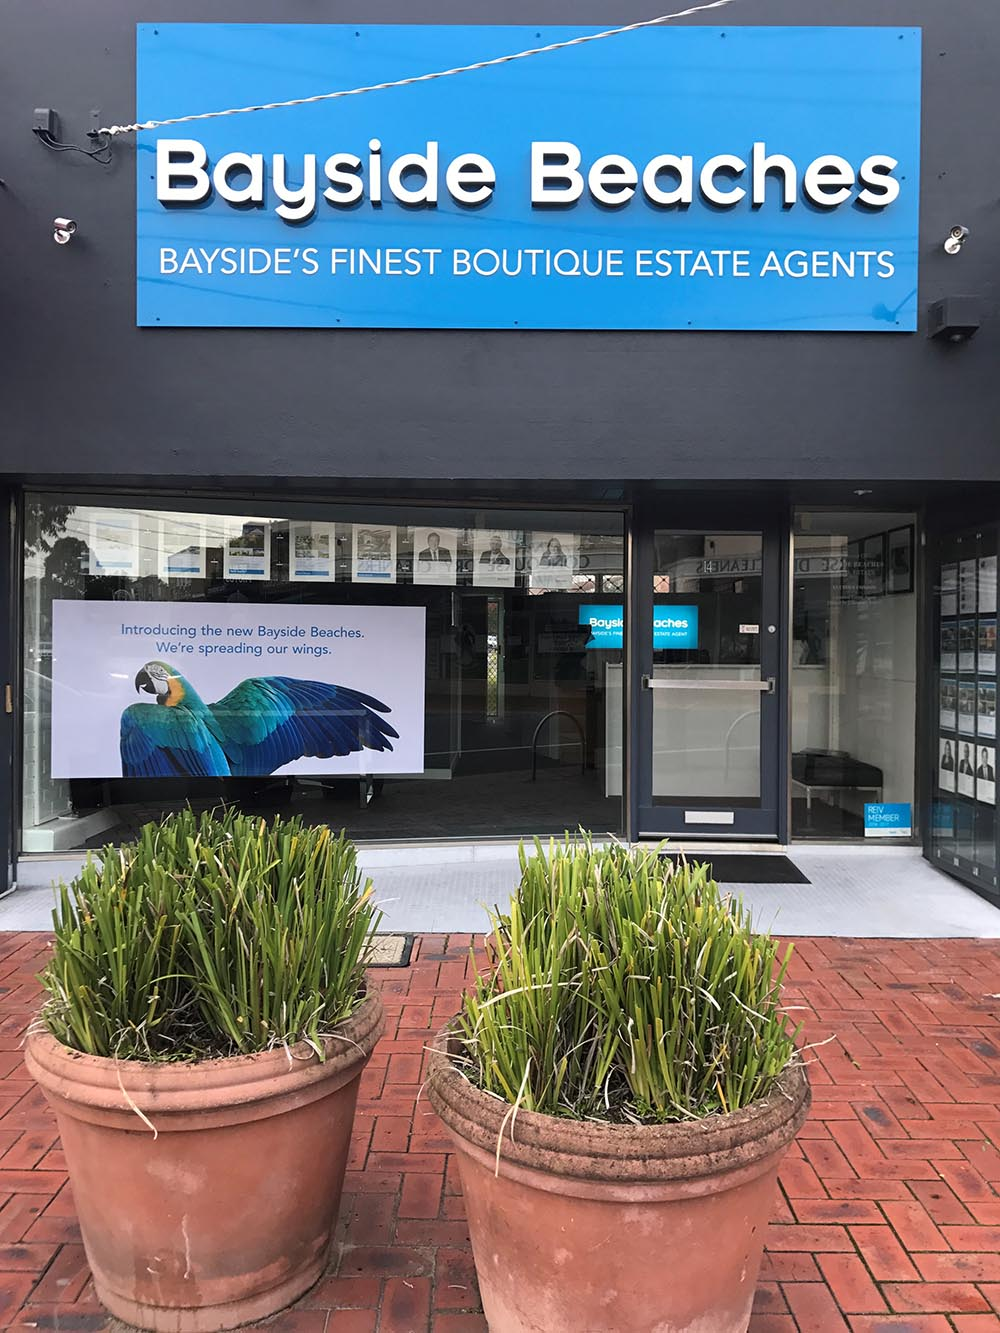 Bayside Beaches Real Estate